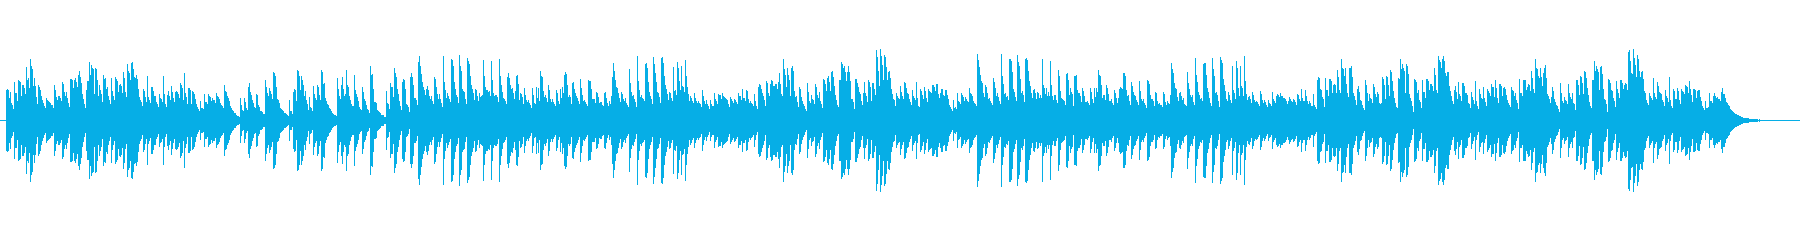 Music box relaxation music's reproduced waveform